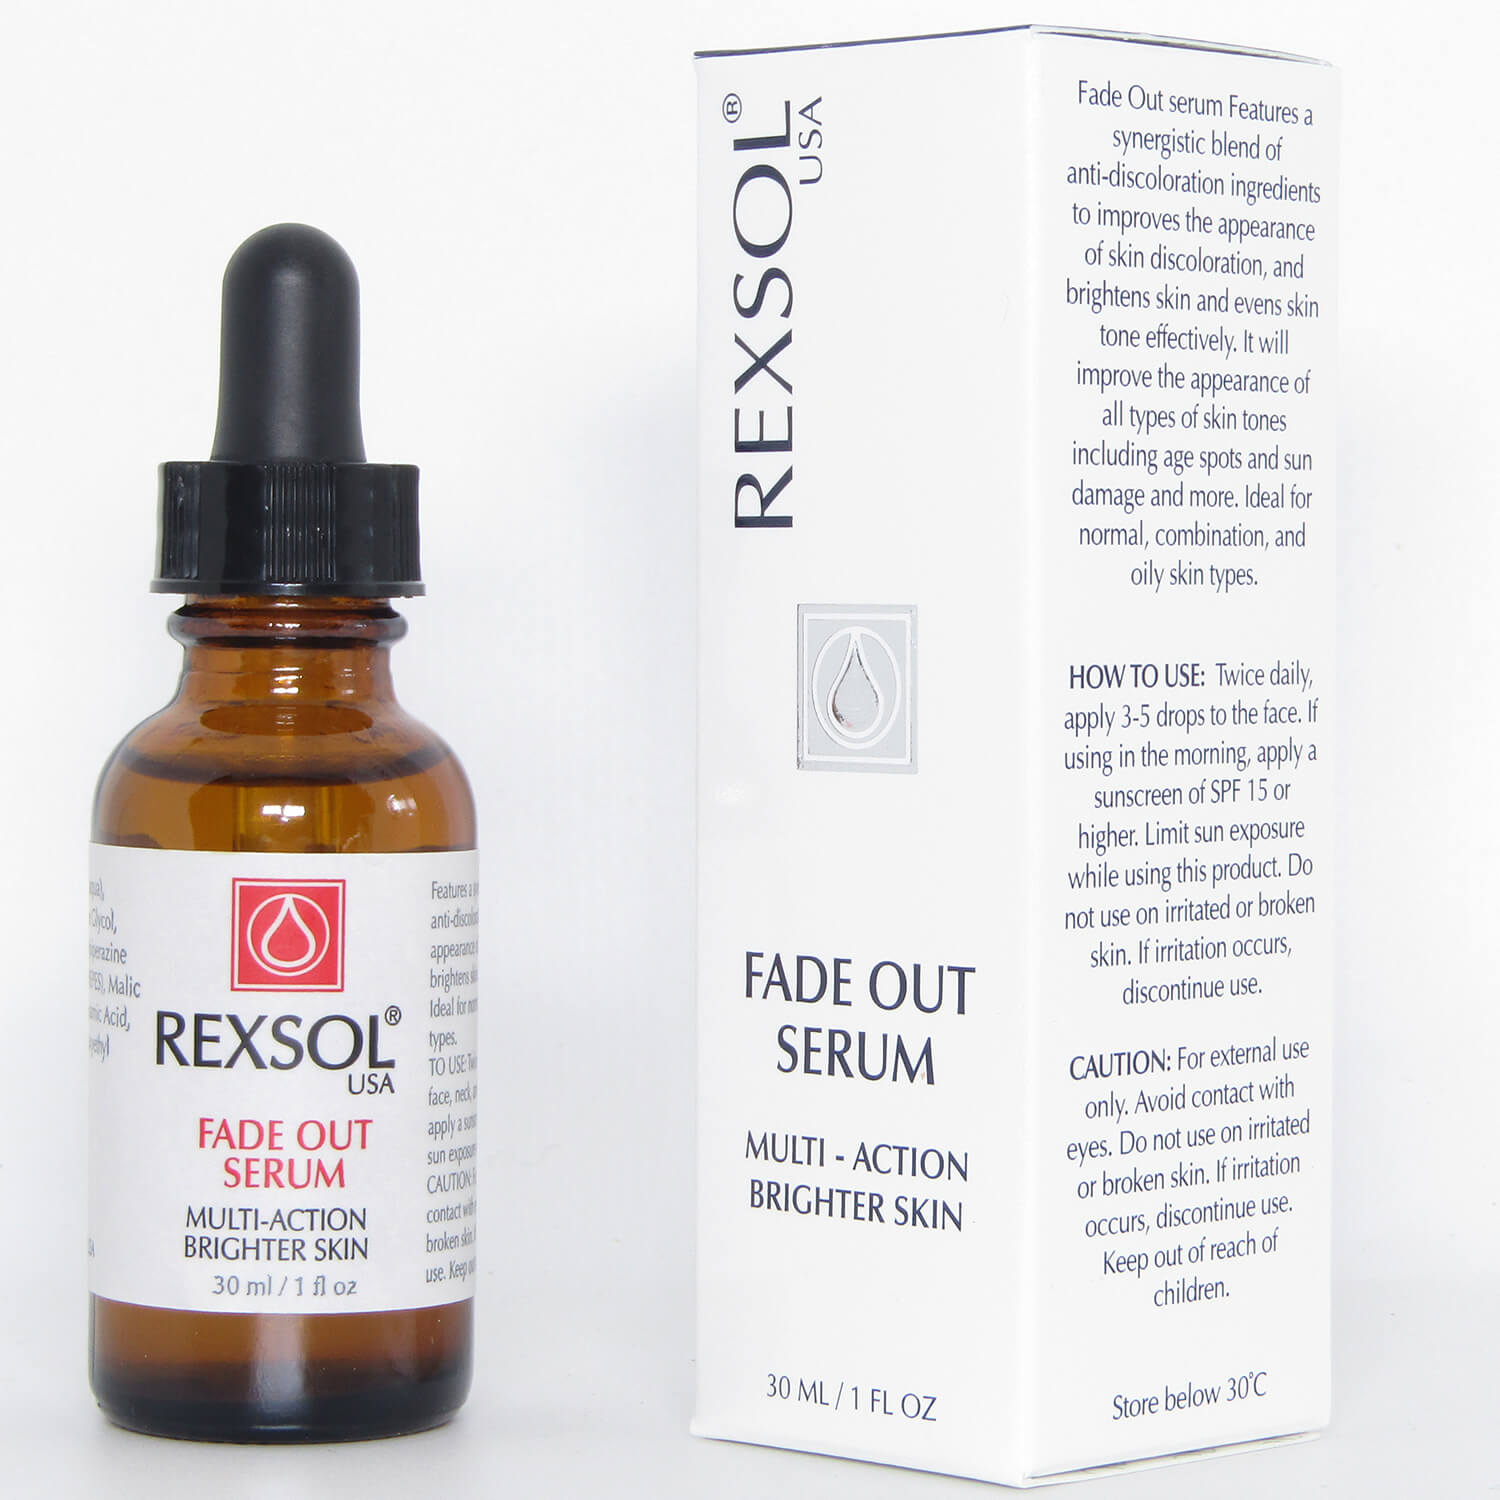 FADE OUT SERUM